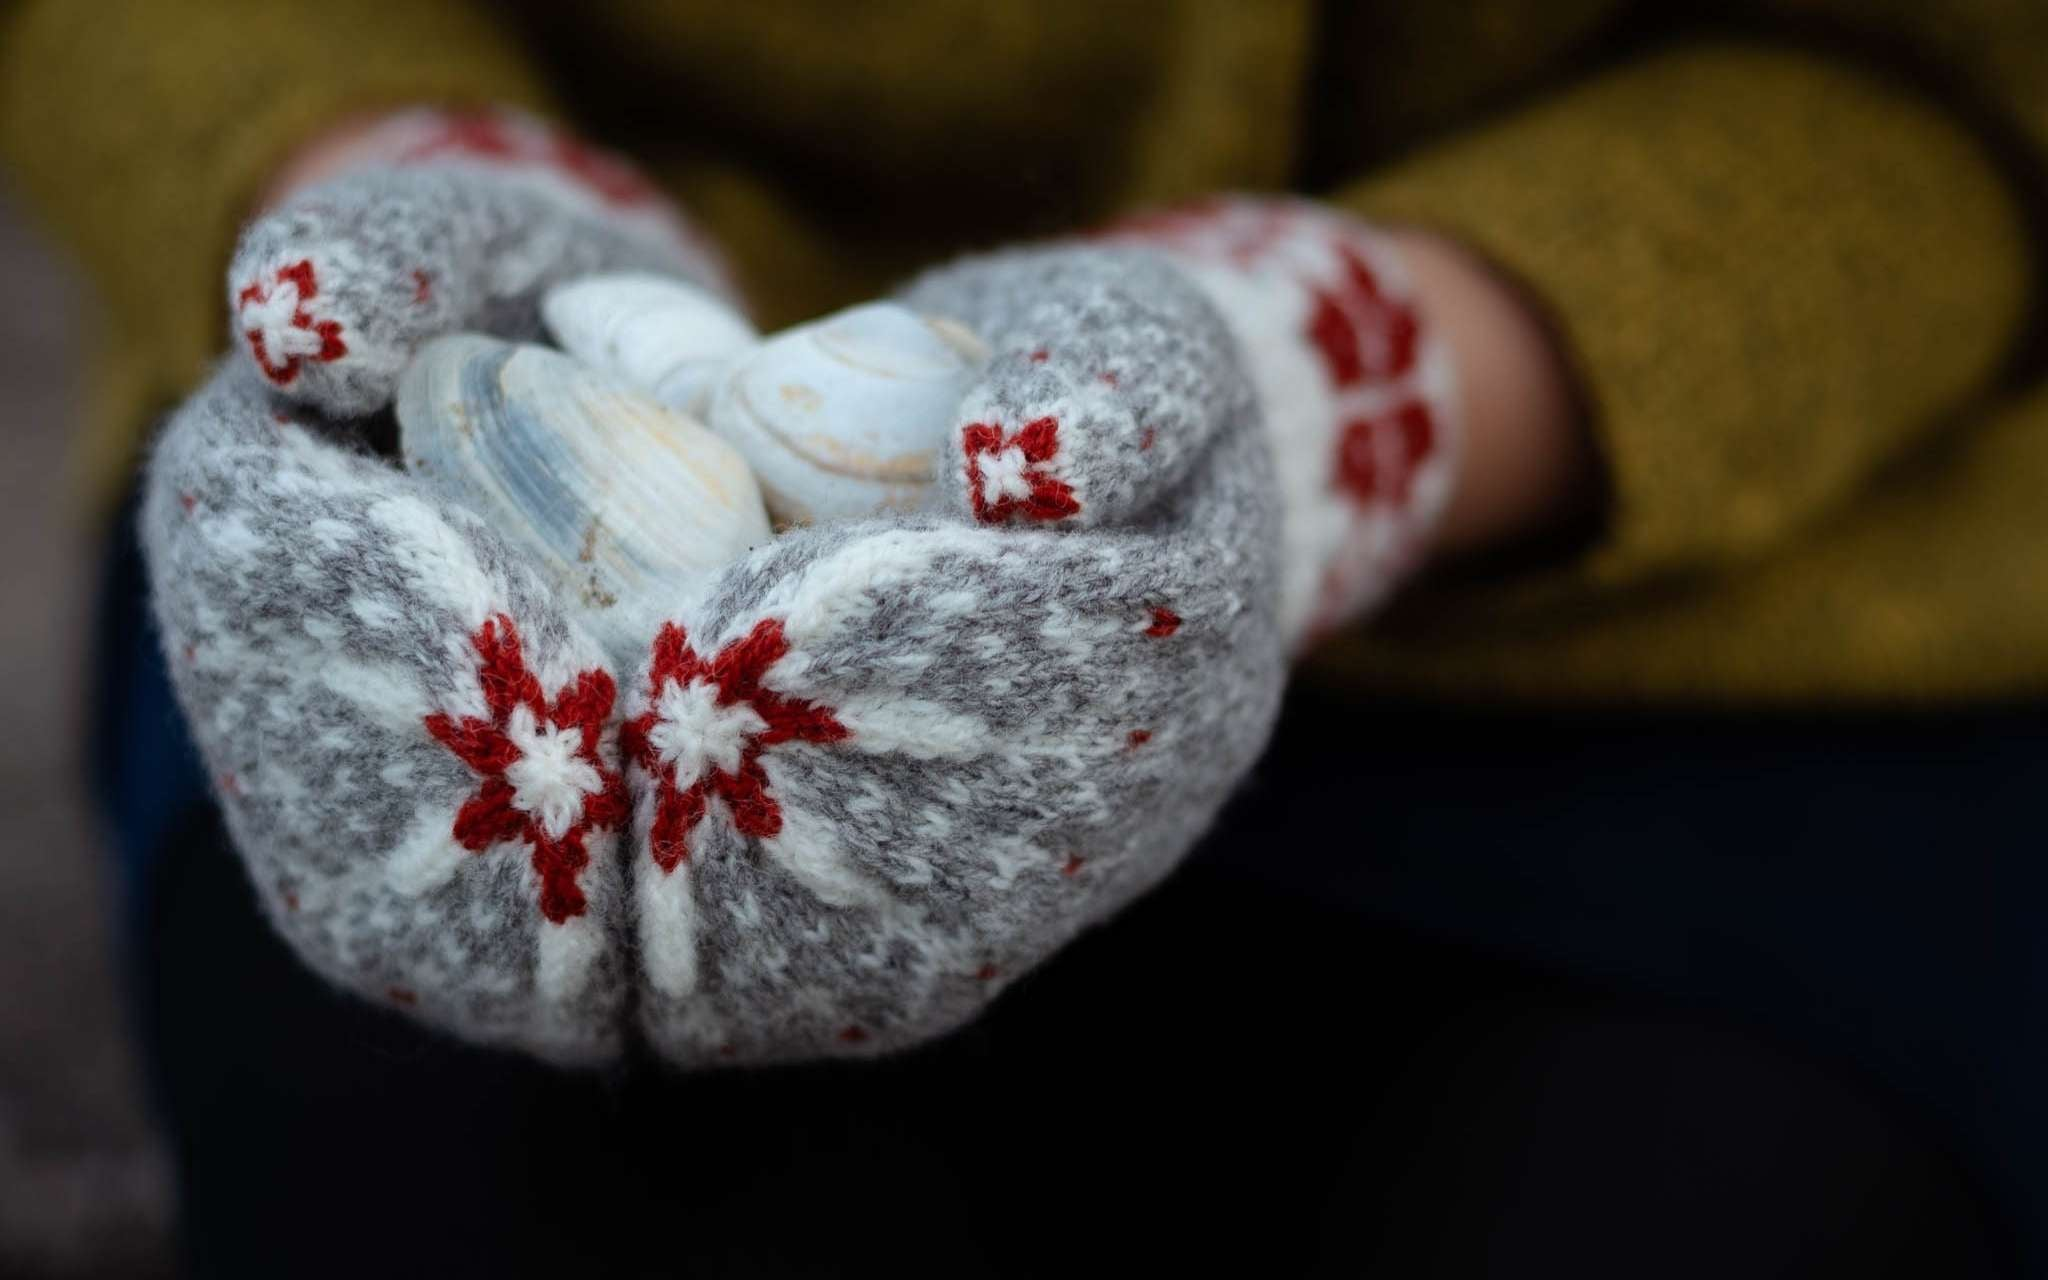 Two hands wearing grey, white and red colourwork mittens are clasped together holding a pale grey stone.